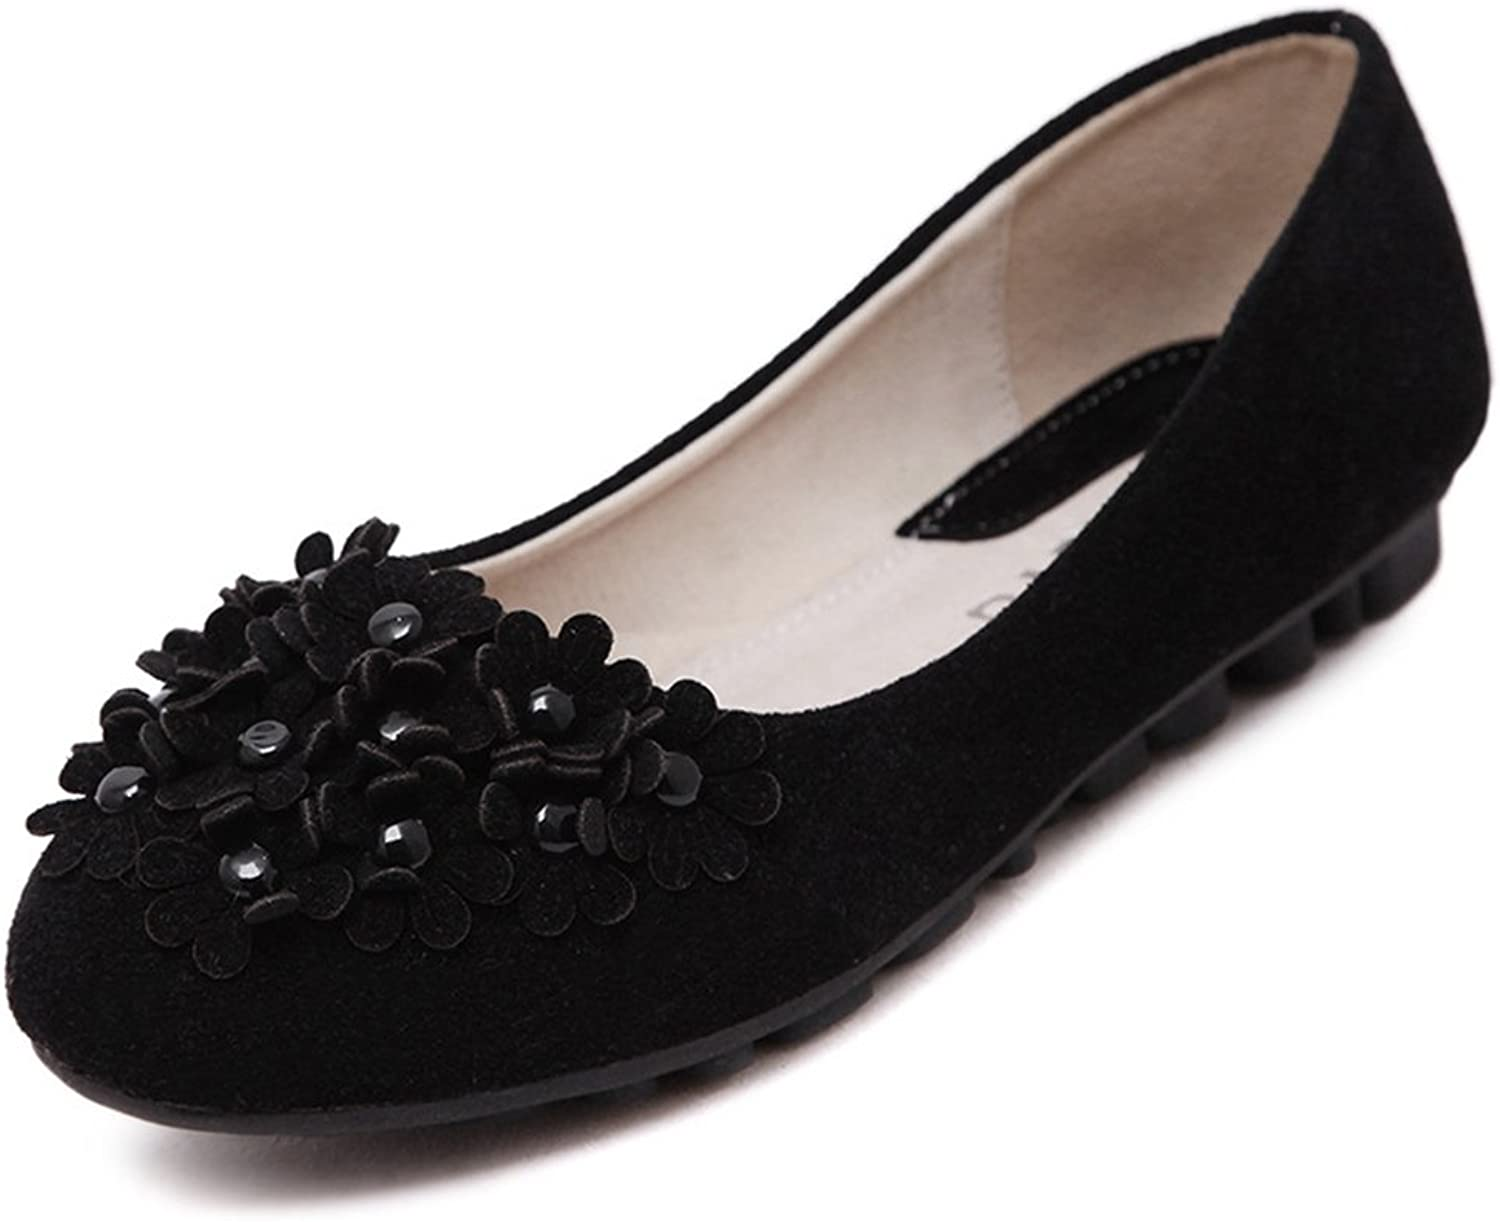 CYBLING Casual Slip On Loafers shoes for Women Outdoor Walking Soft Soled Flowers Flats